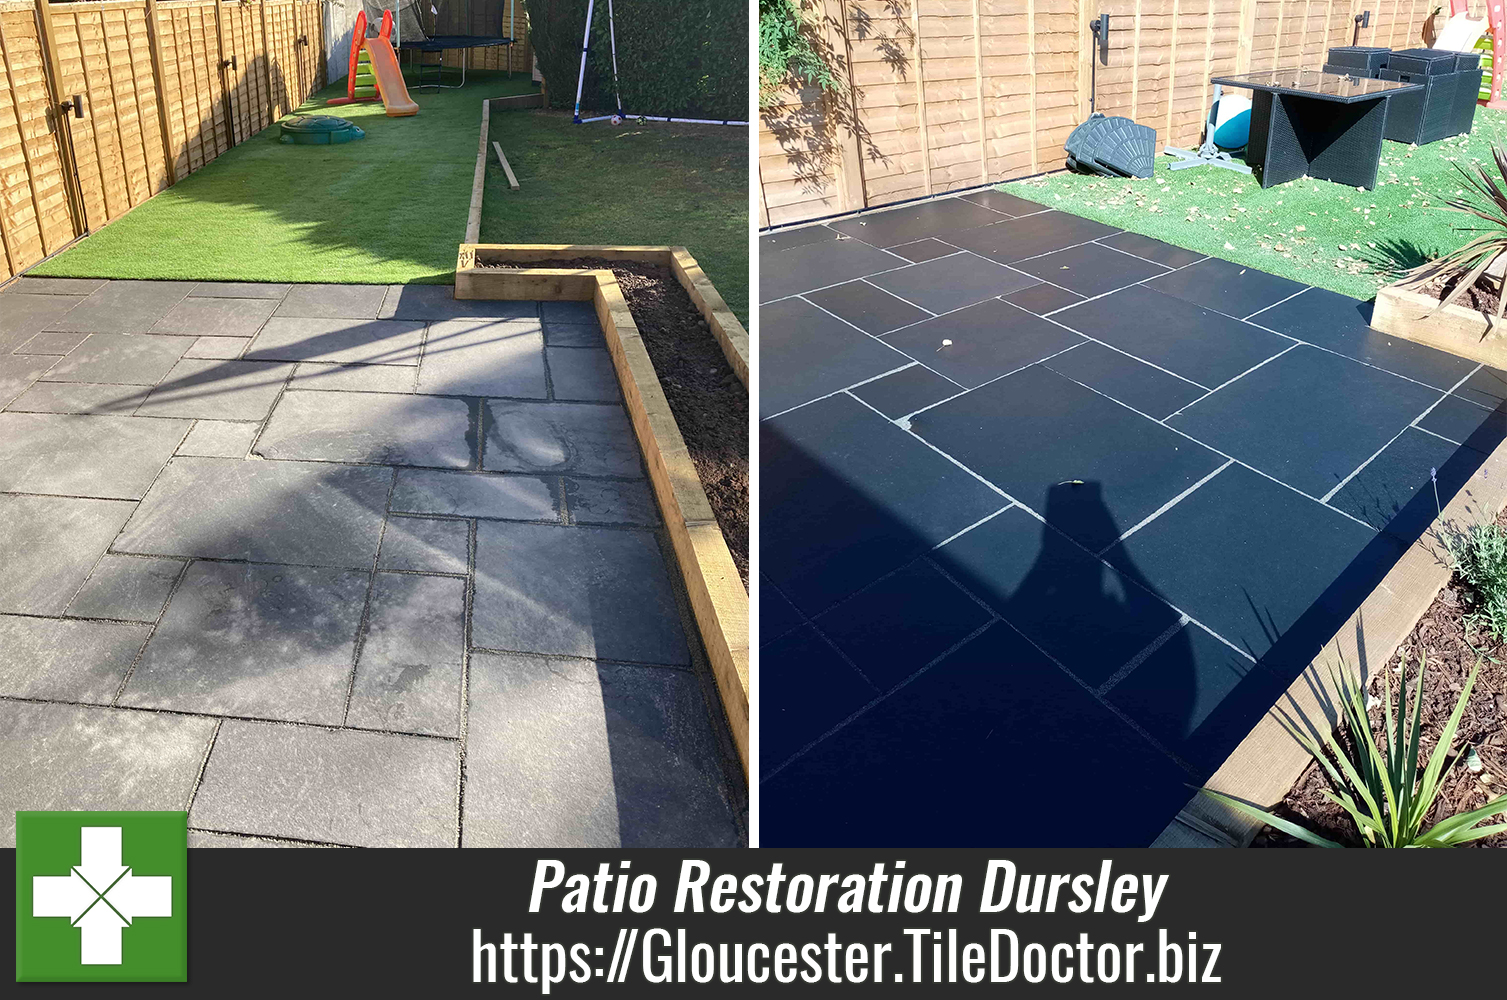 Ruined Black Limestone Patio Restored in Dursley